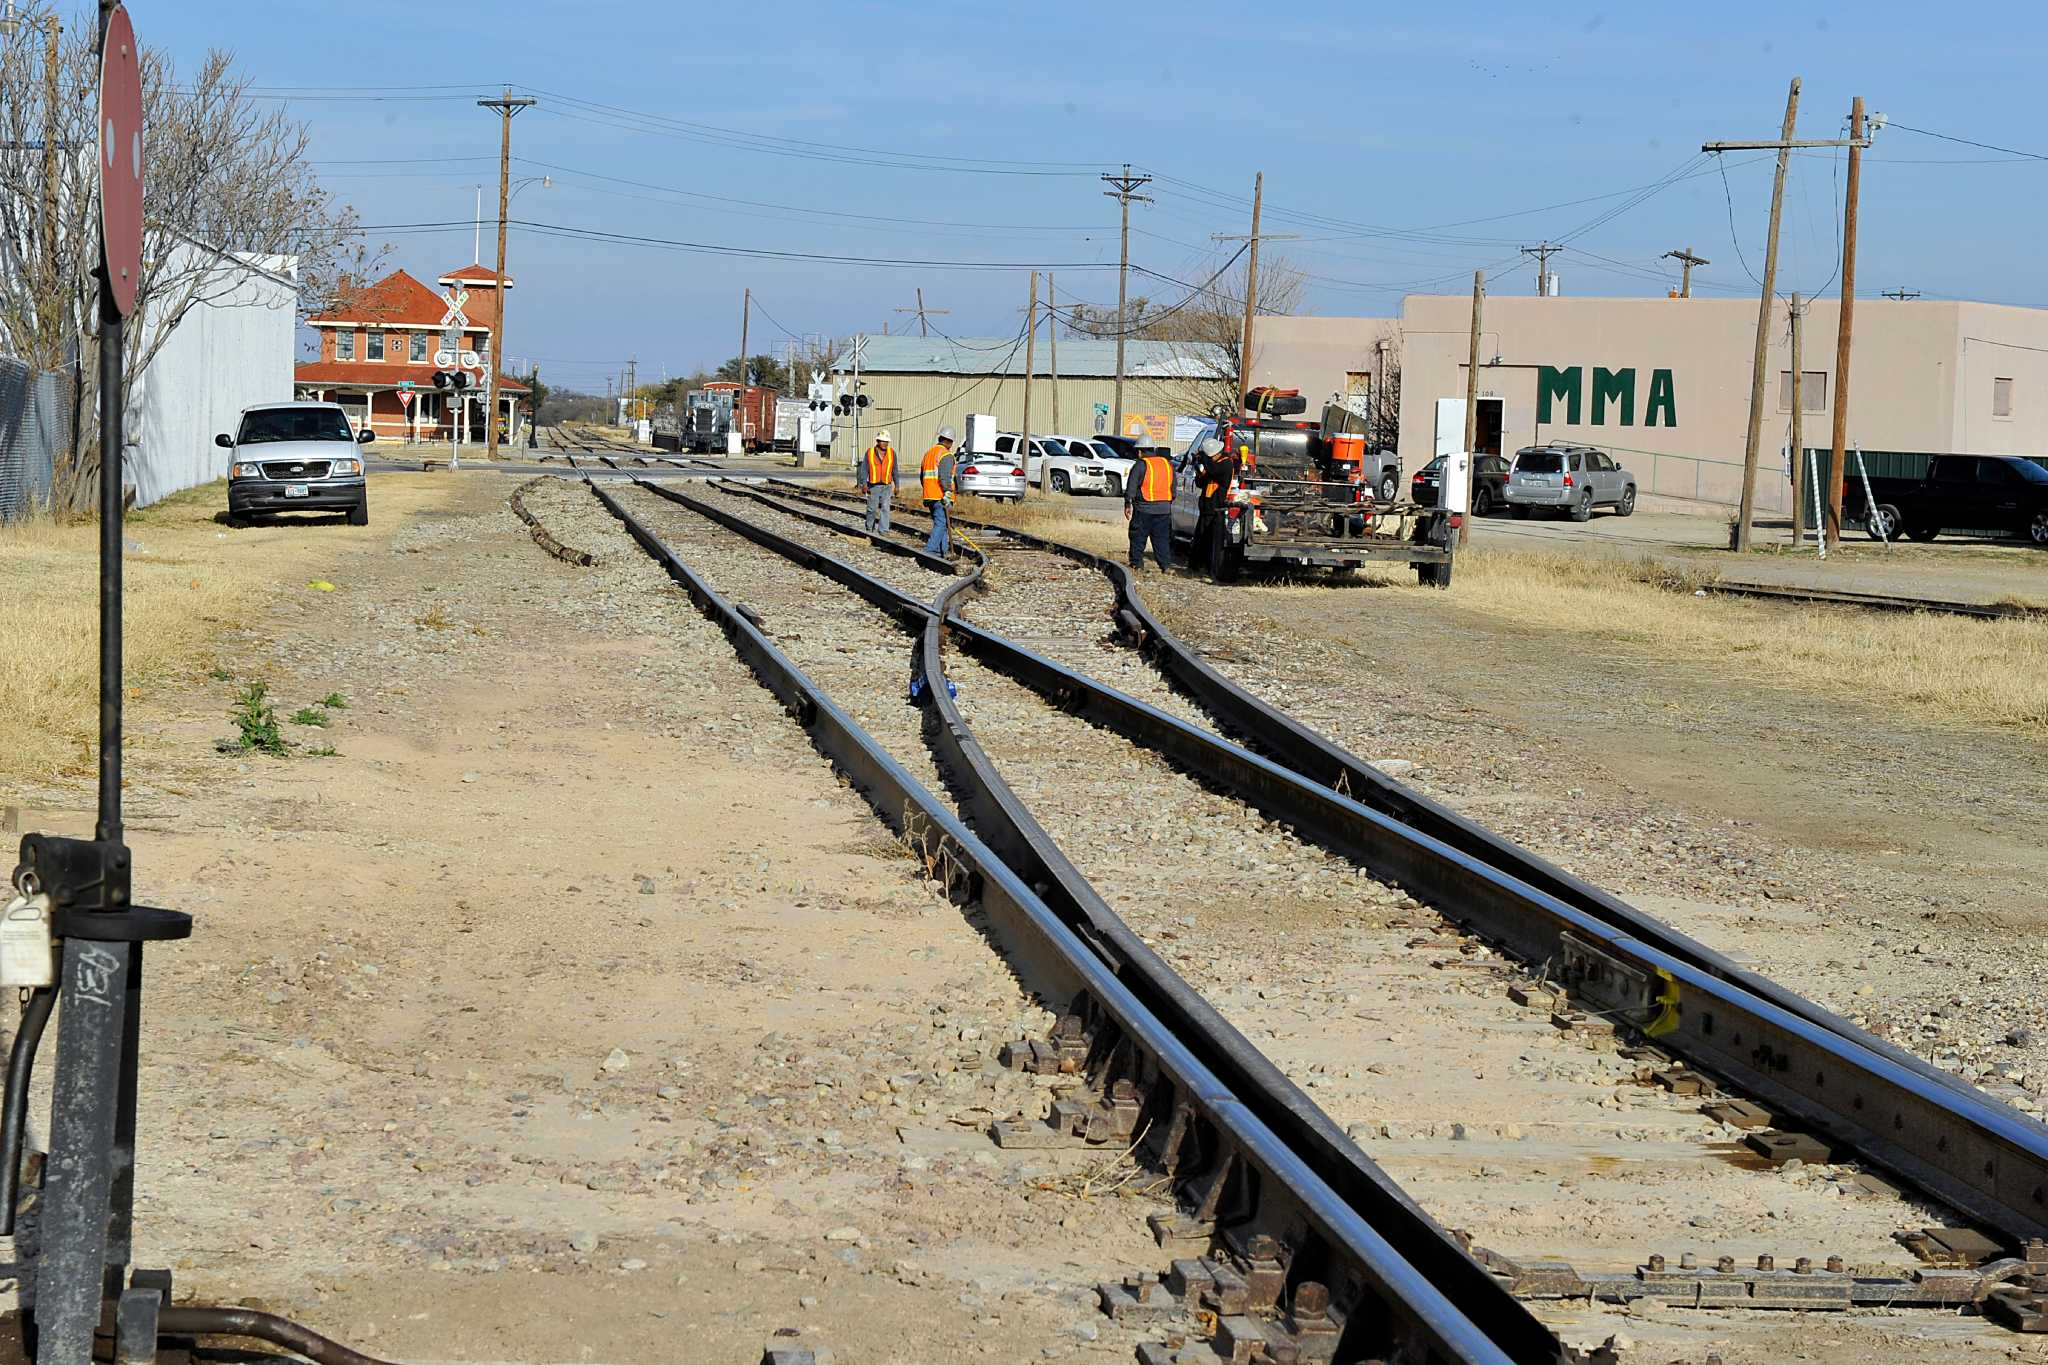 In West Texas, protest aims to stop fracking sand depot